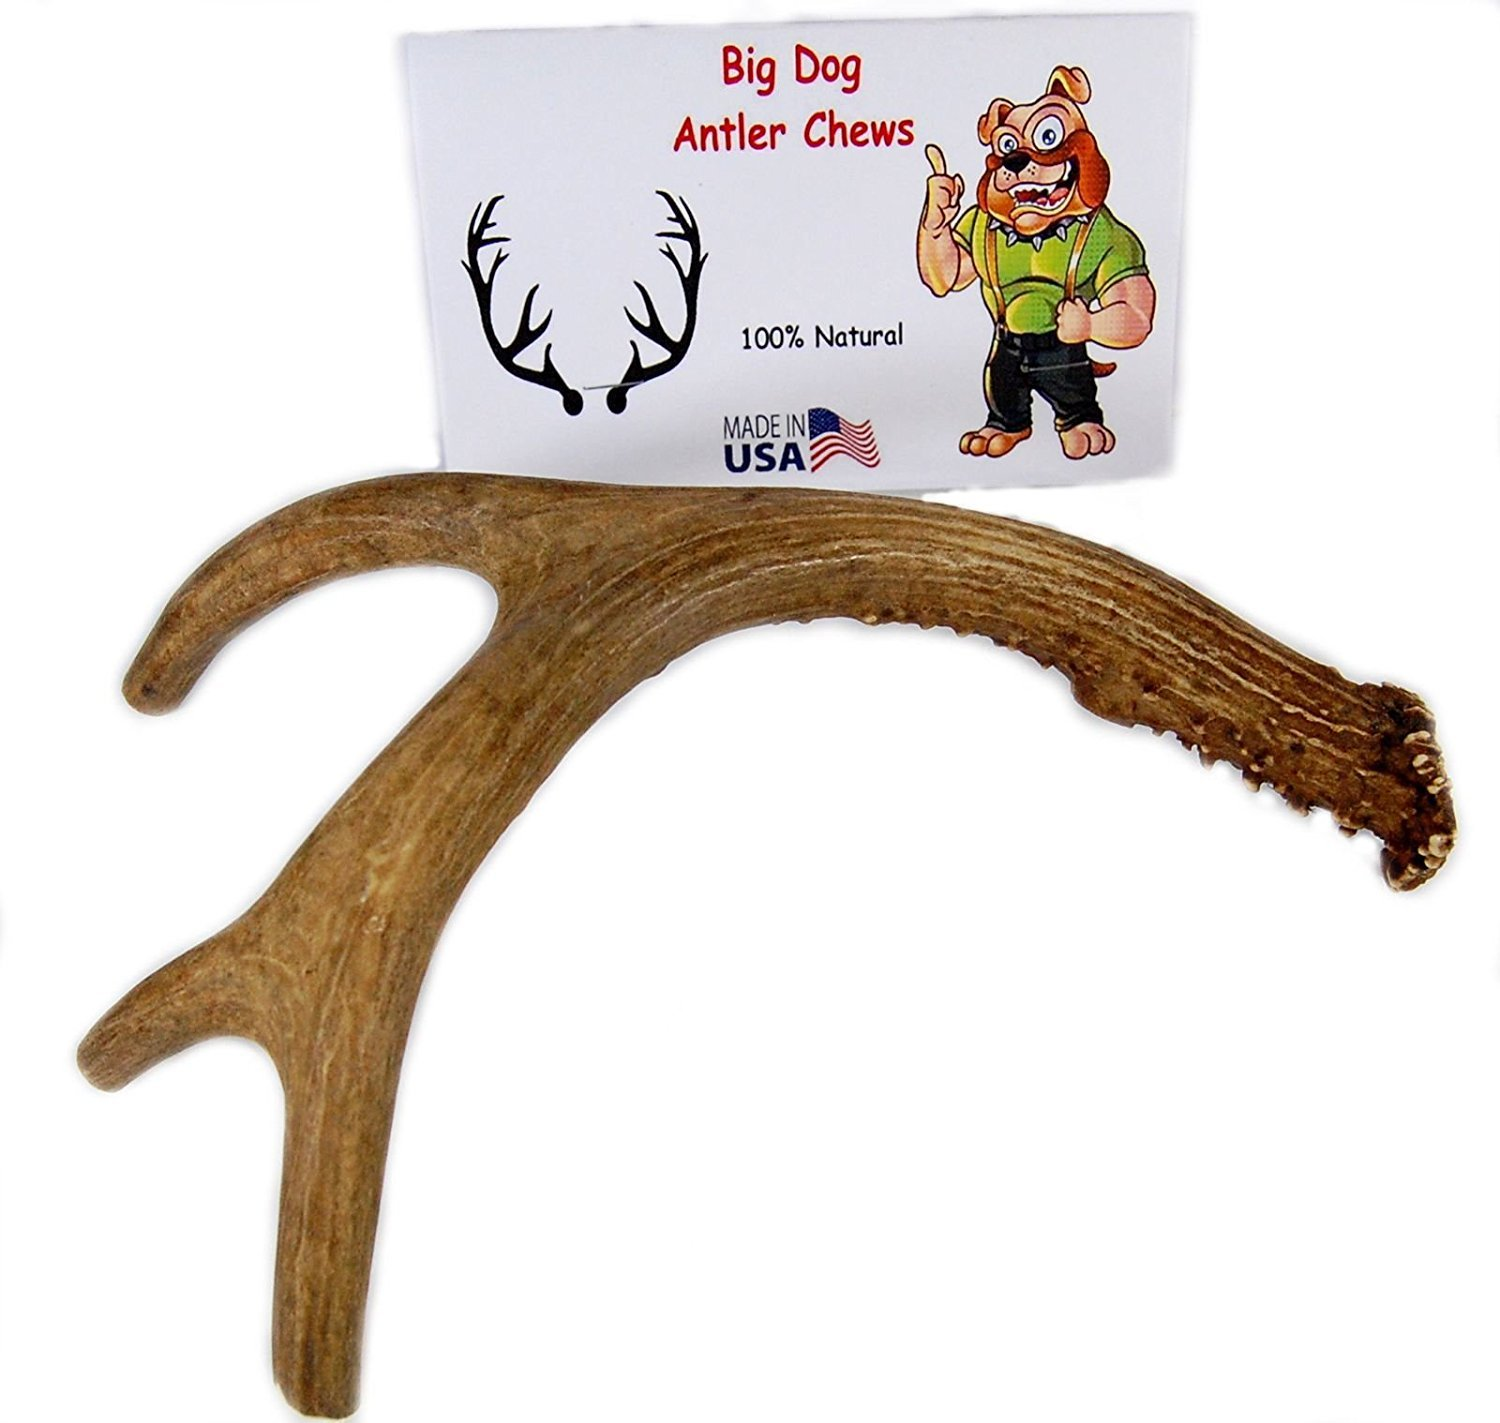 Big Dog Antler Chews - Deer Antler Dog Chew, Medium, 9 Inches to 13 Inches Long. Perfect for your Medium to Large Size Dogs and Puppies! Grade A Premium. Happy Dog Guarantee!